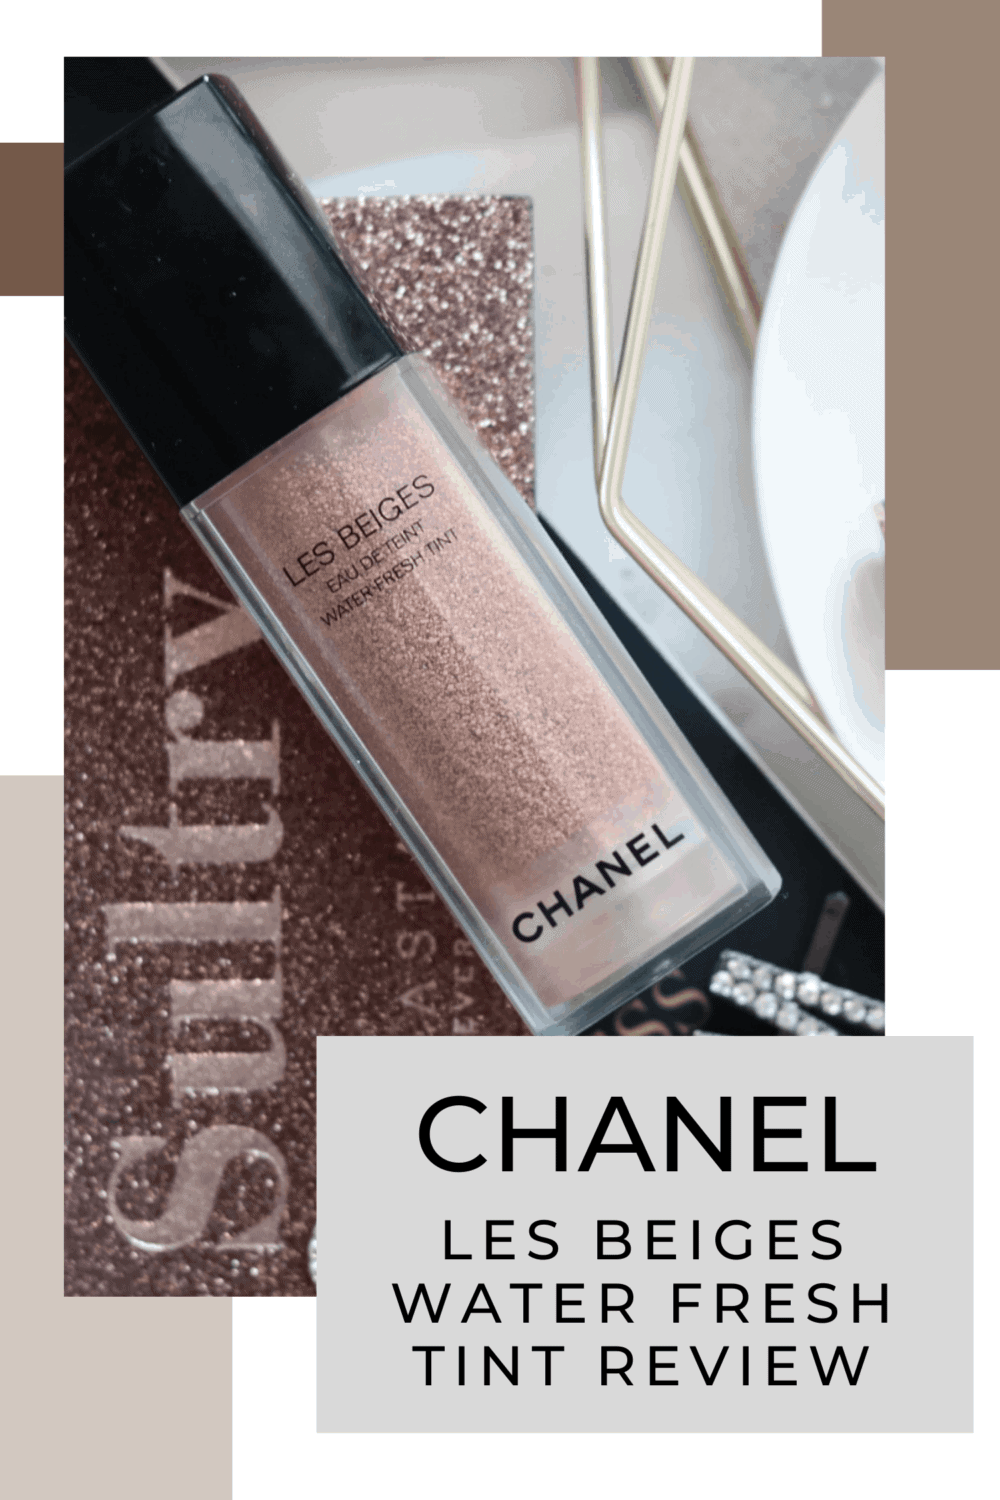 Chanel Les Beiges Water Fresh Tint Review and swatch light medium